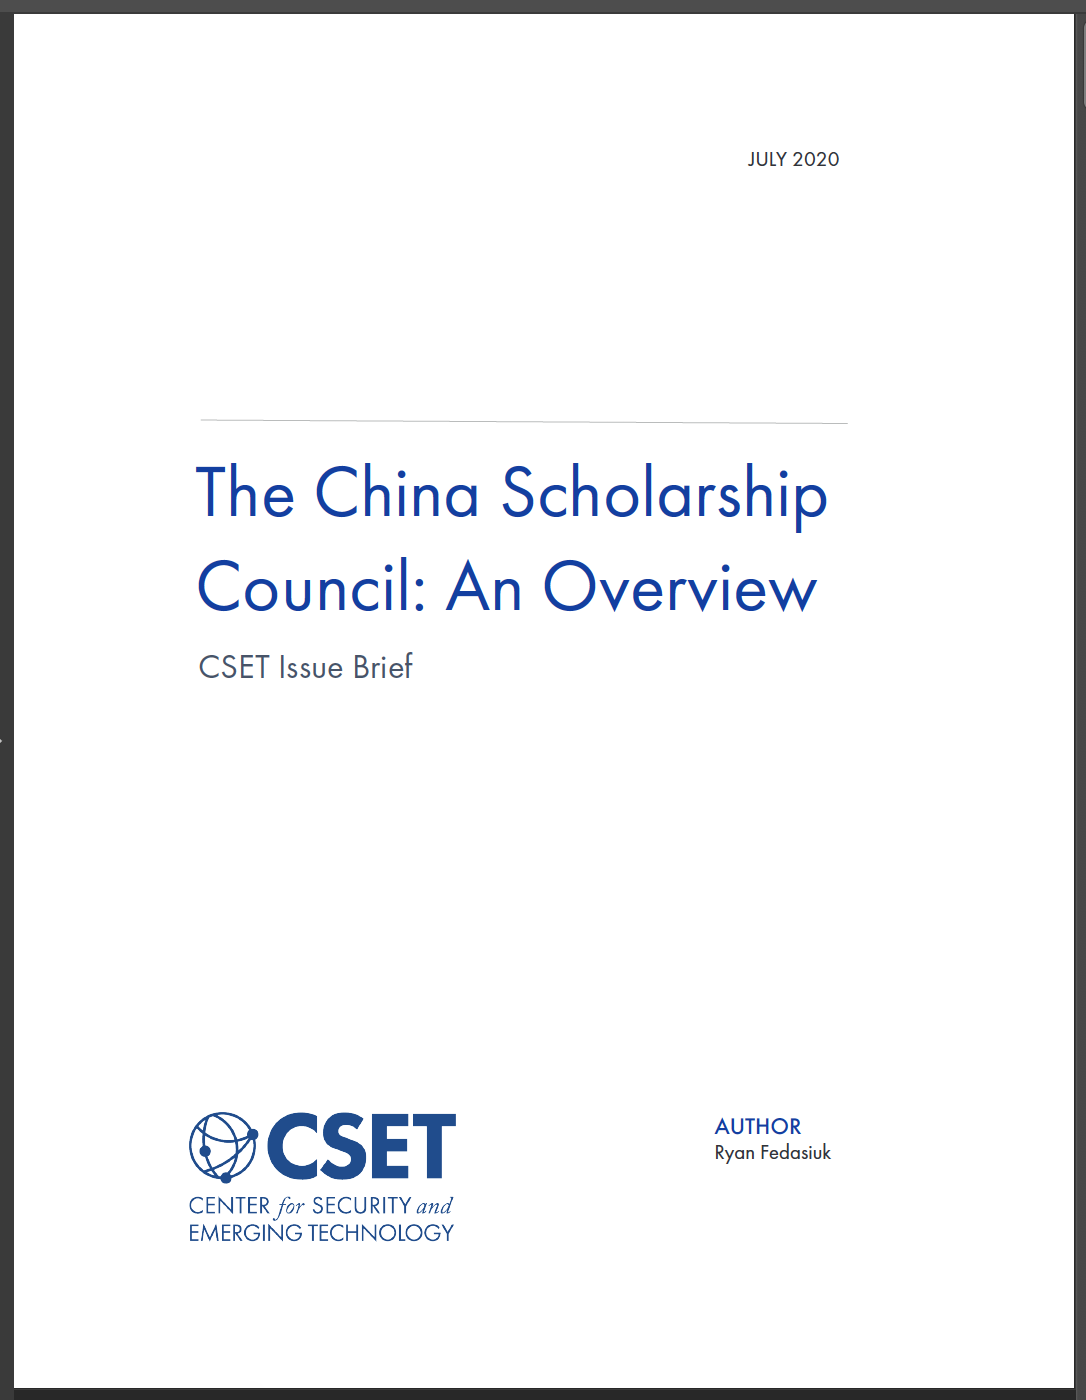 CSC Overview Cover